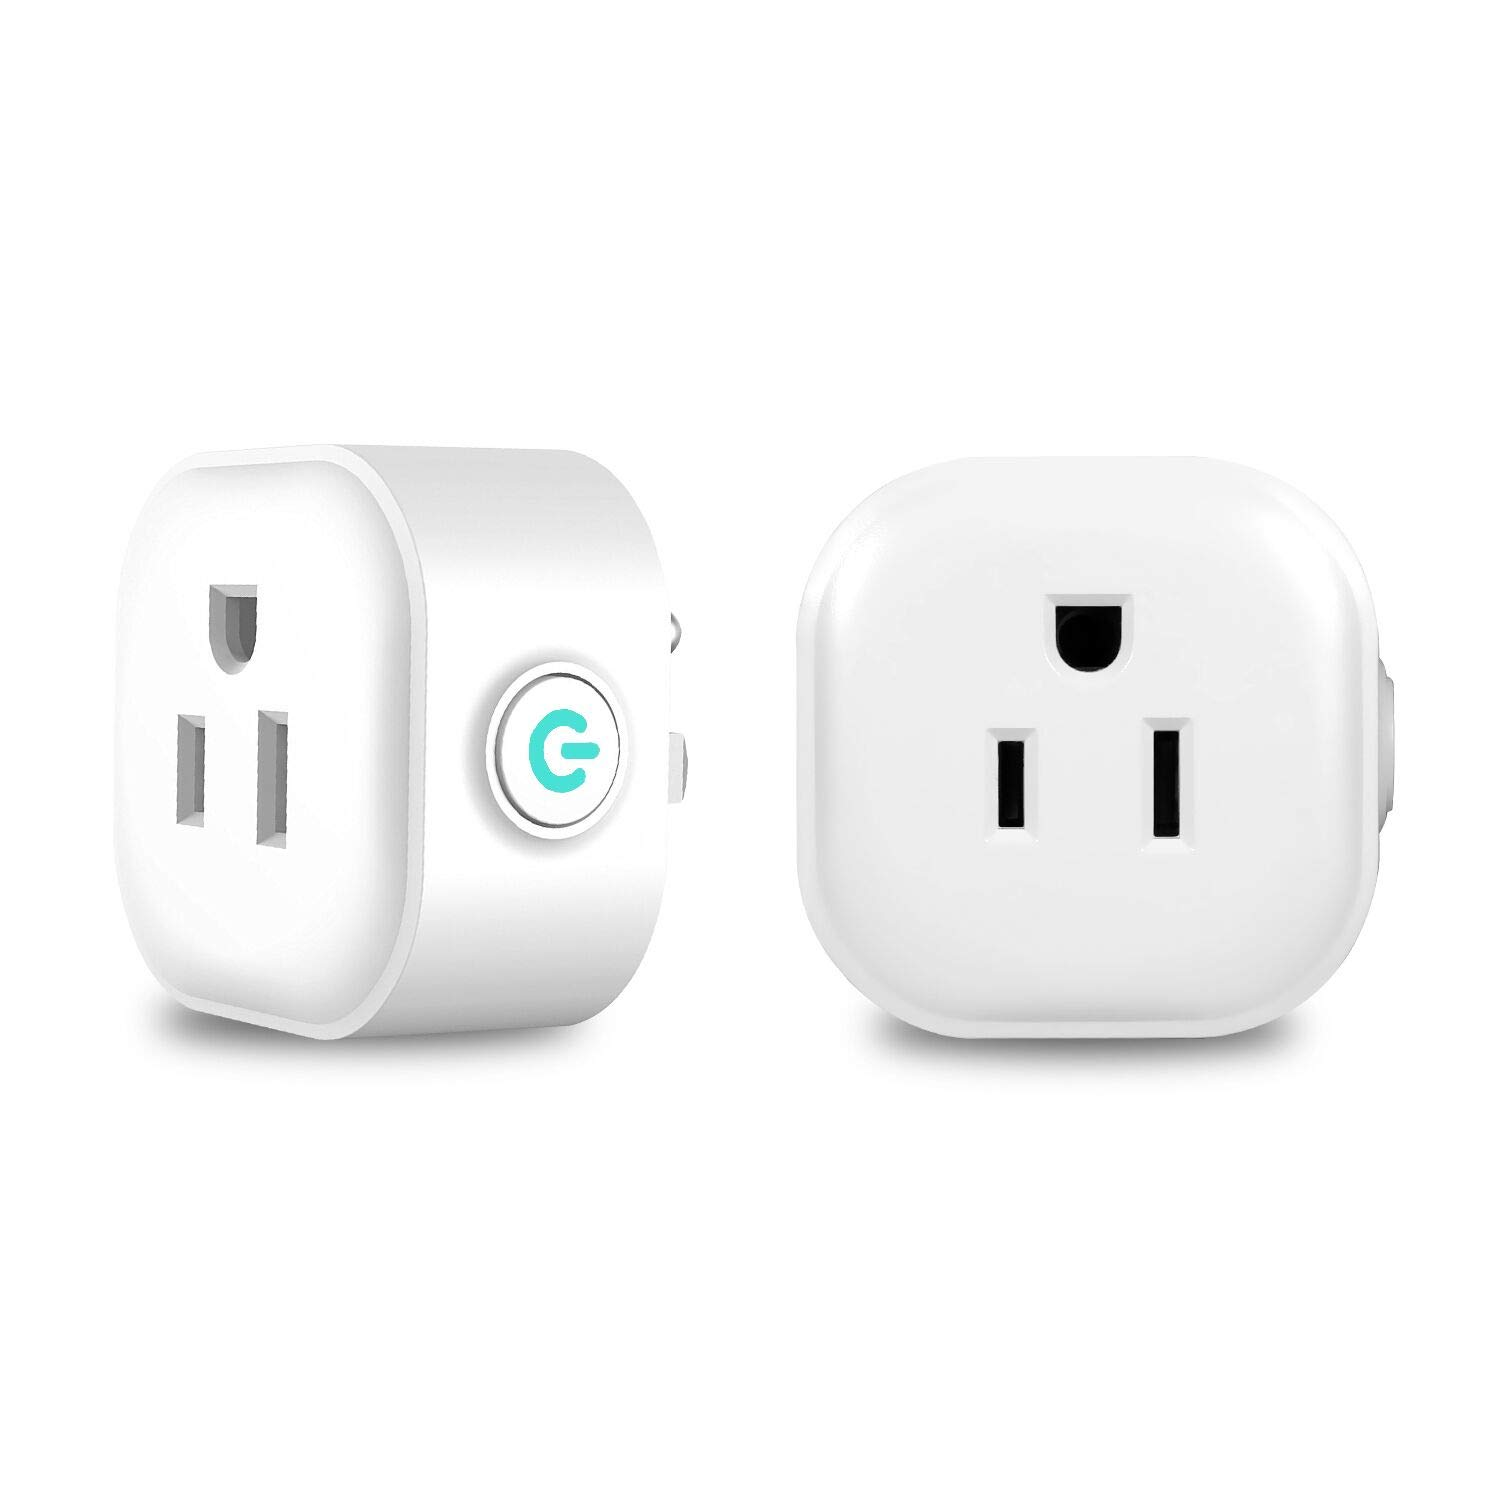 Smart Plug Mini Outlet Compatible with Alexa and Google Assistant IFTTT, No Hub Required, ETL and FCC Listed Wifi Enabled Remote Control Smart Socket